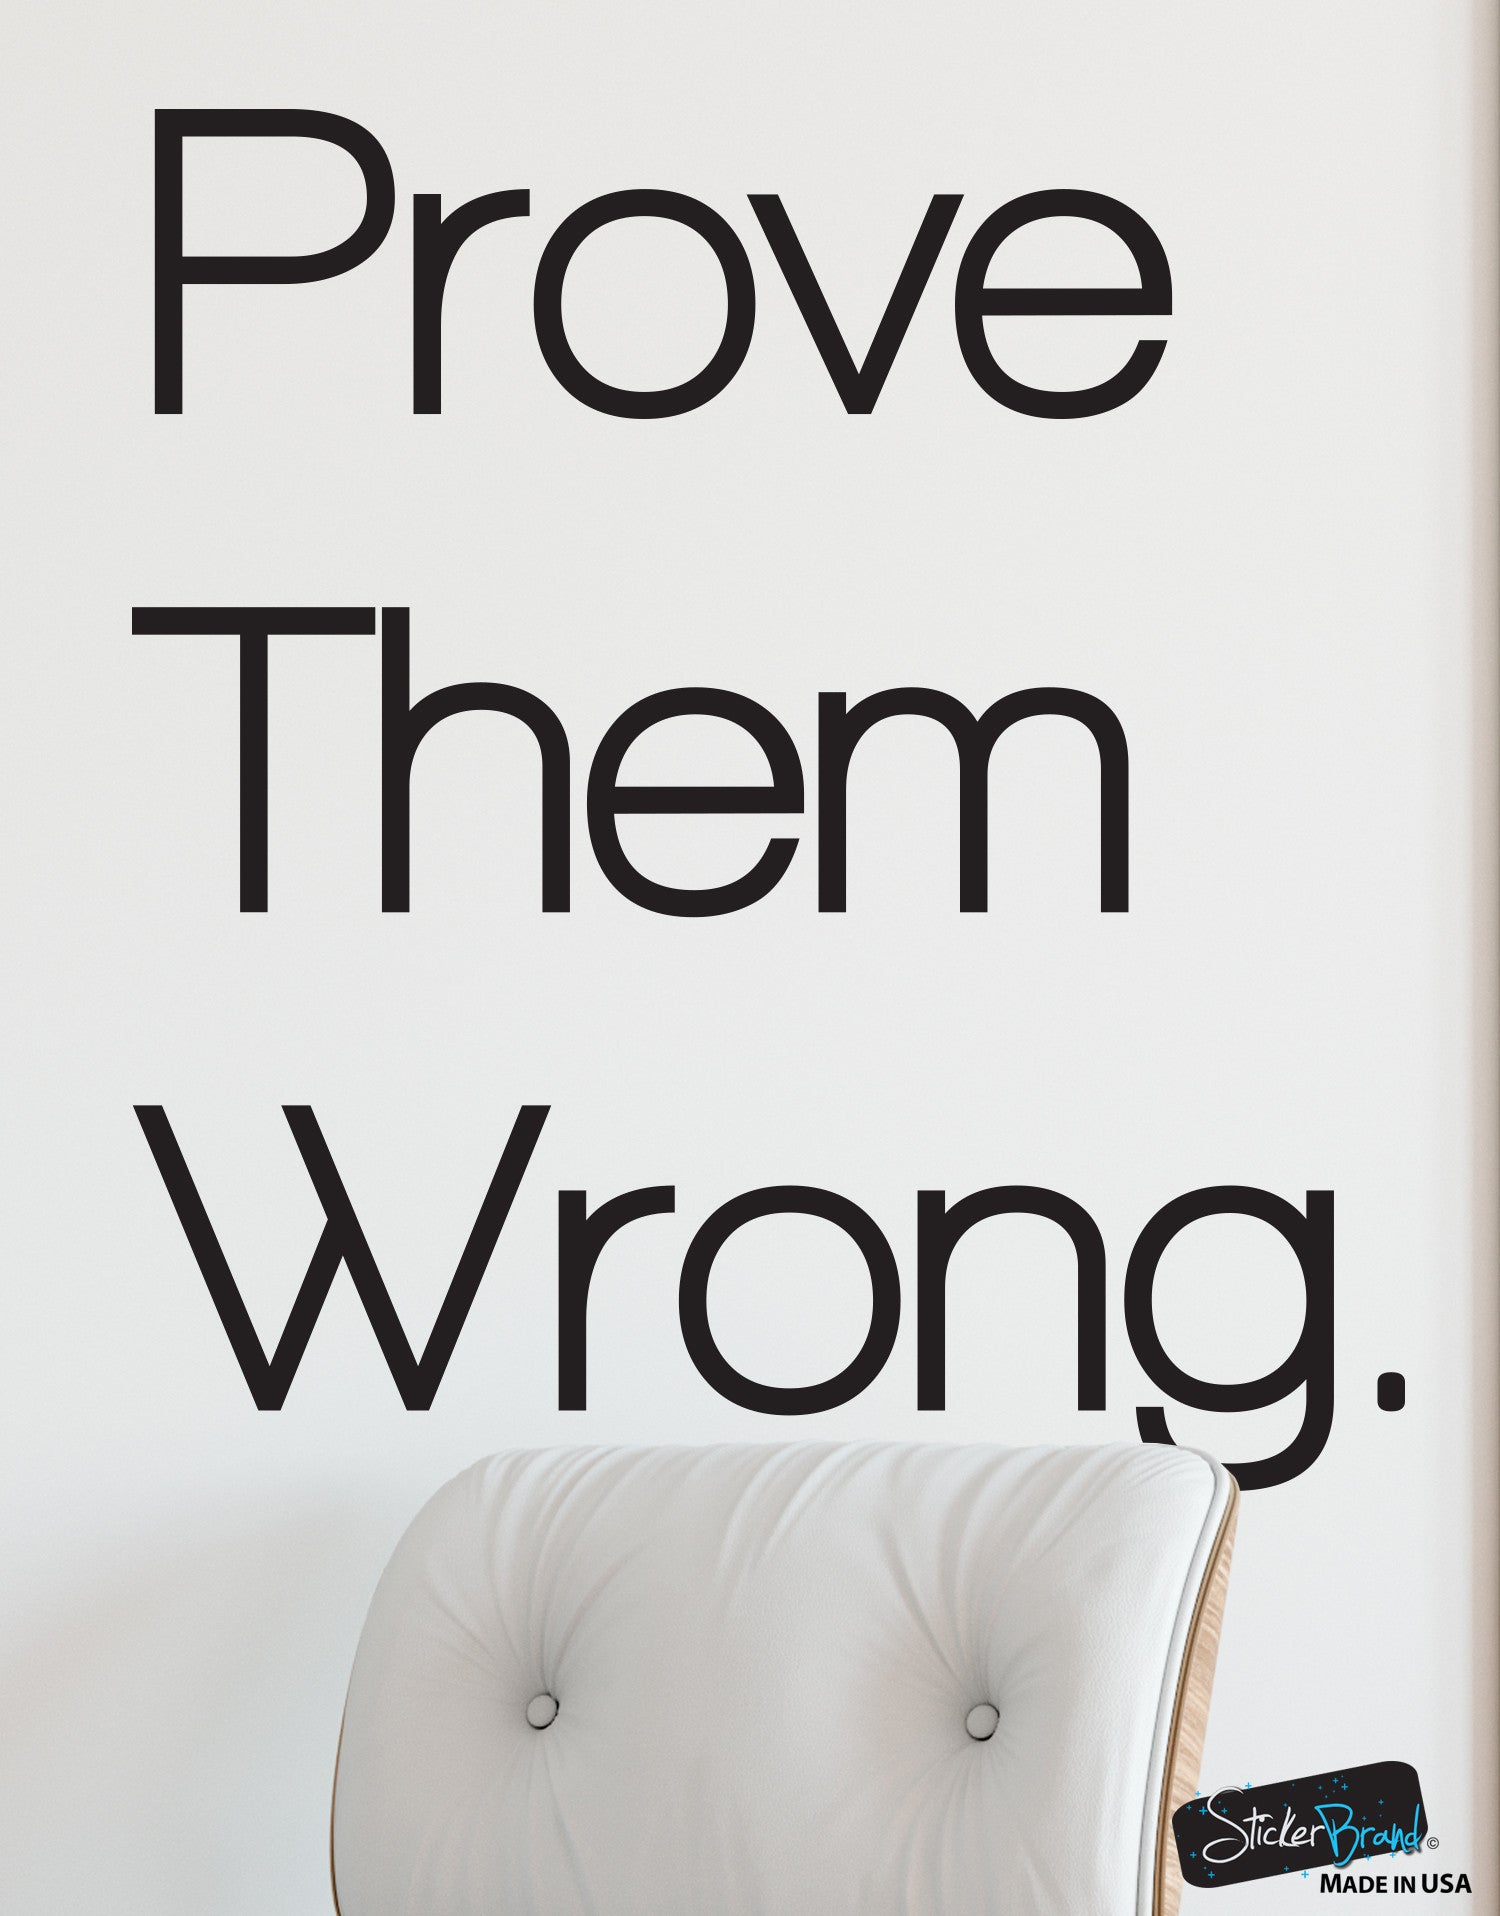 Prove Them Wrong Quotes Prove Them Wrong Motivational Quote Vinyl Wall Decal Sticker 6072